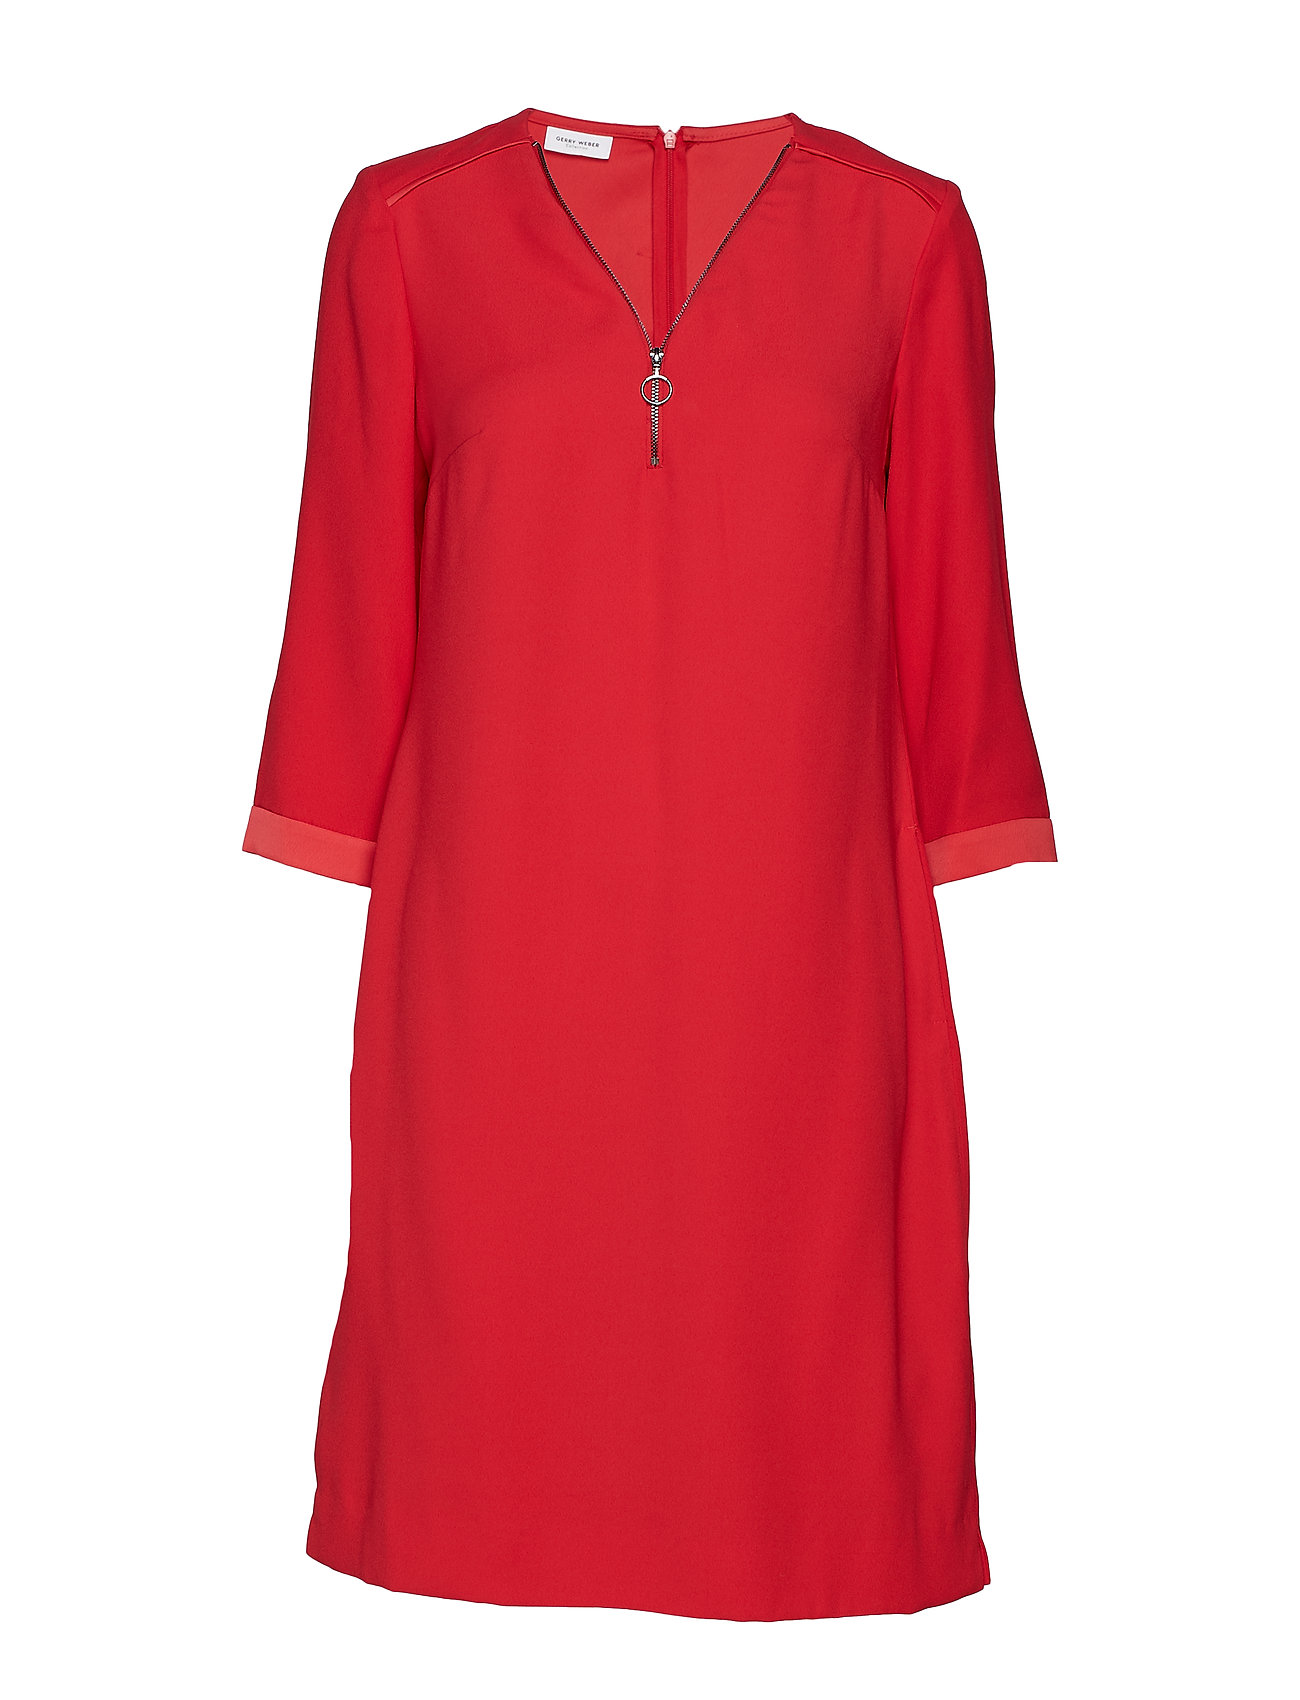 Gerry Weber DRESS WOVEN FABRIC - CHERRY